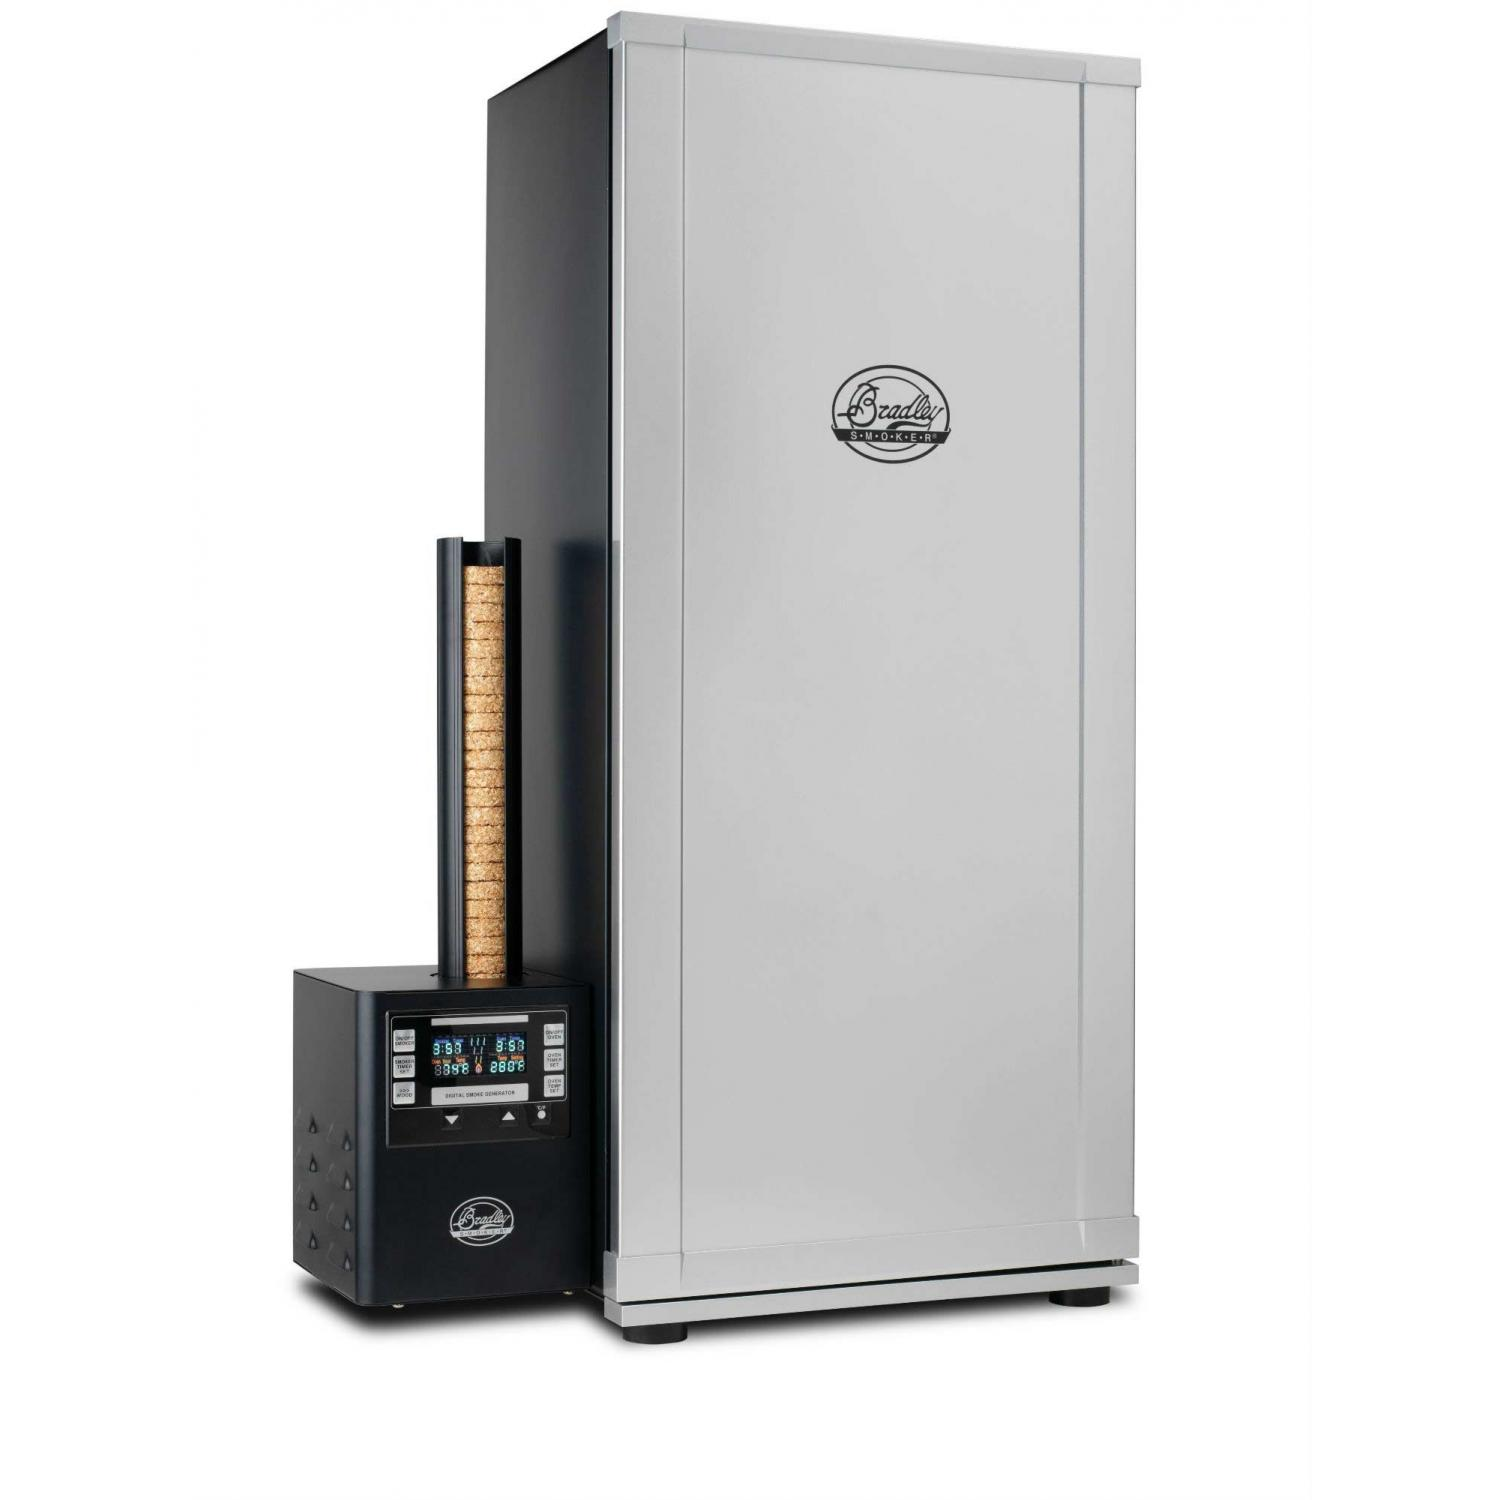 Bradley Technologies Digital 6 Rack BBQ Smoker